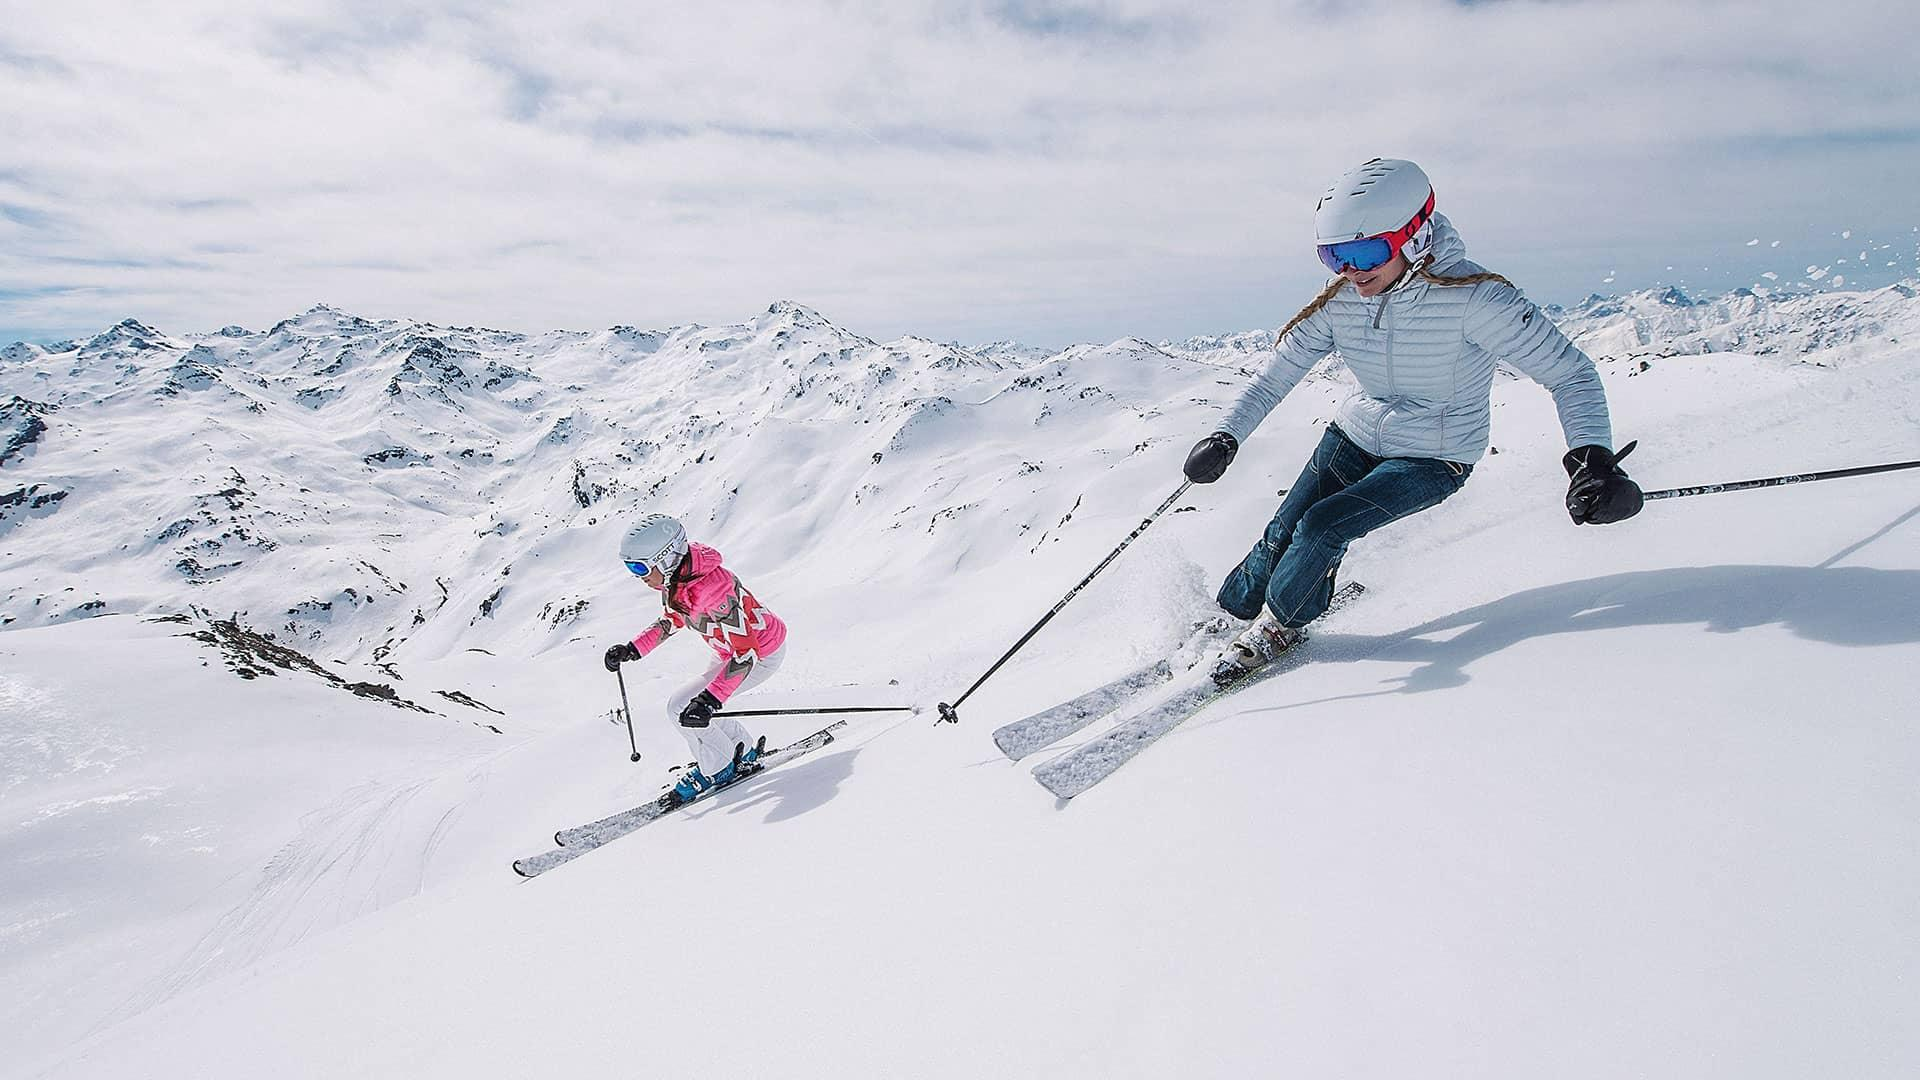 Les 3 Vallées in April : 24 Hours in paradise